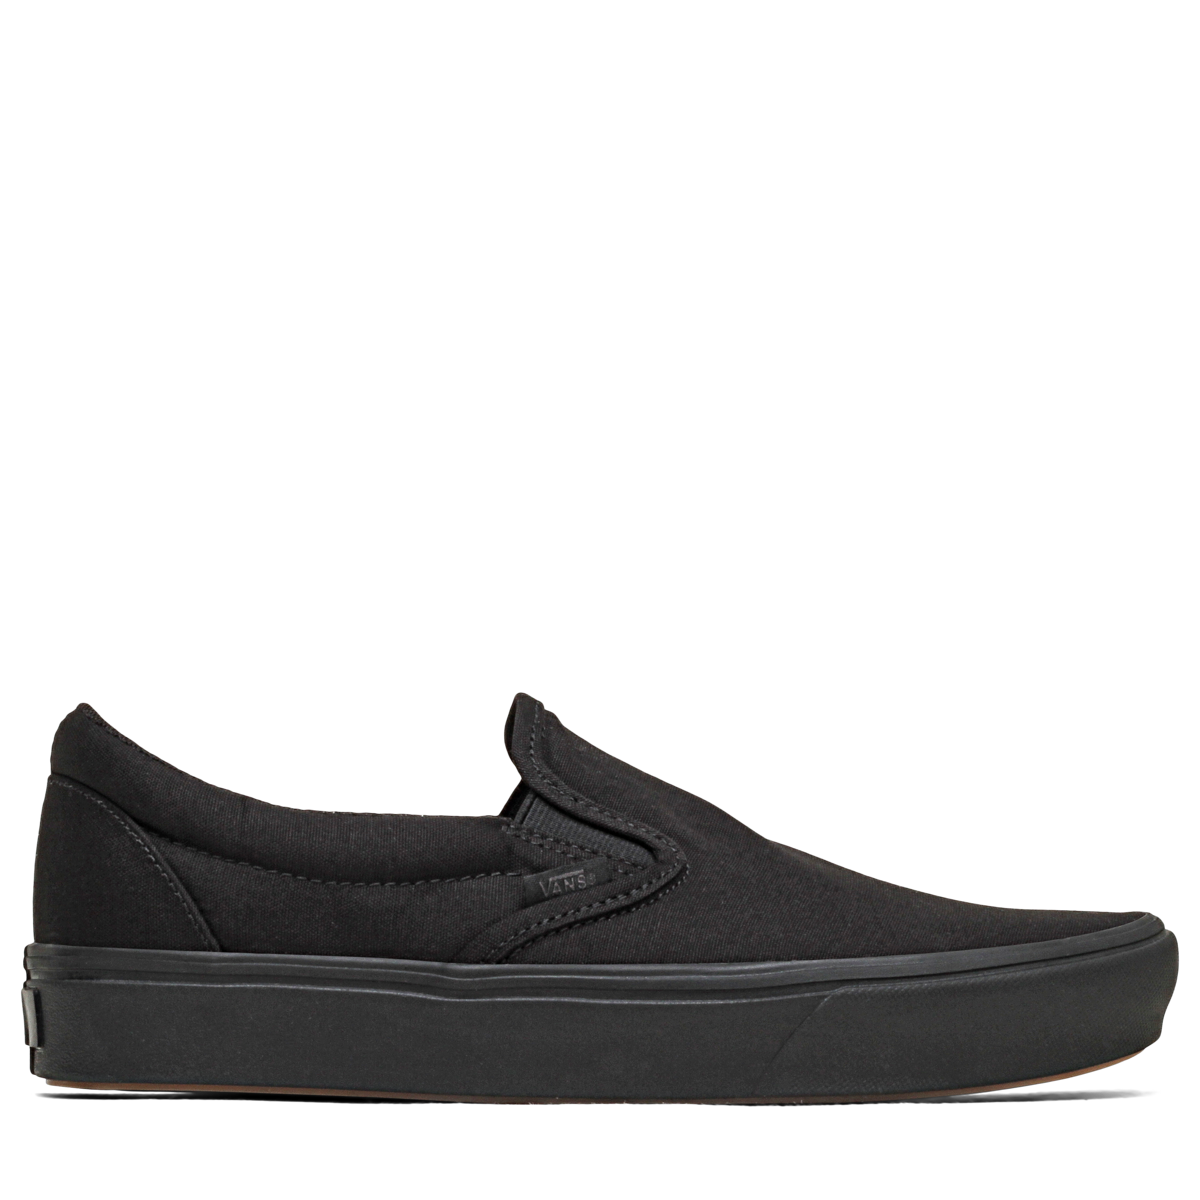 Vans - ComfyCush Slip-On - Sort